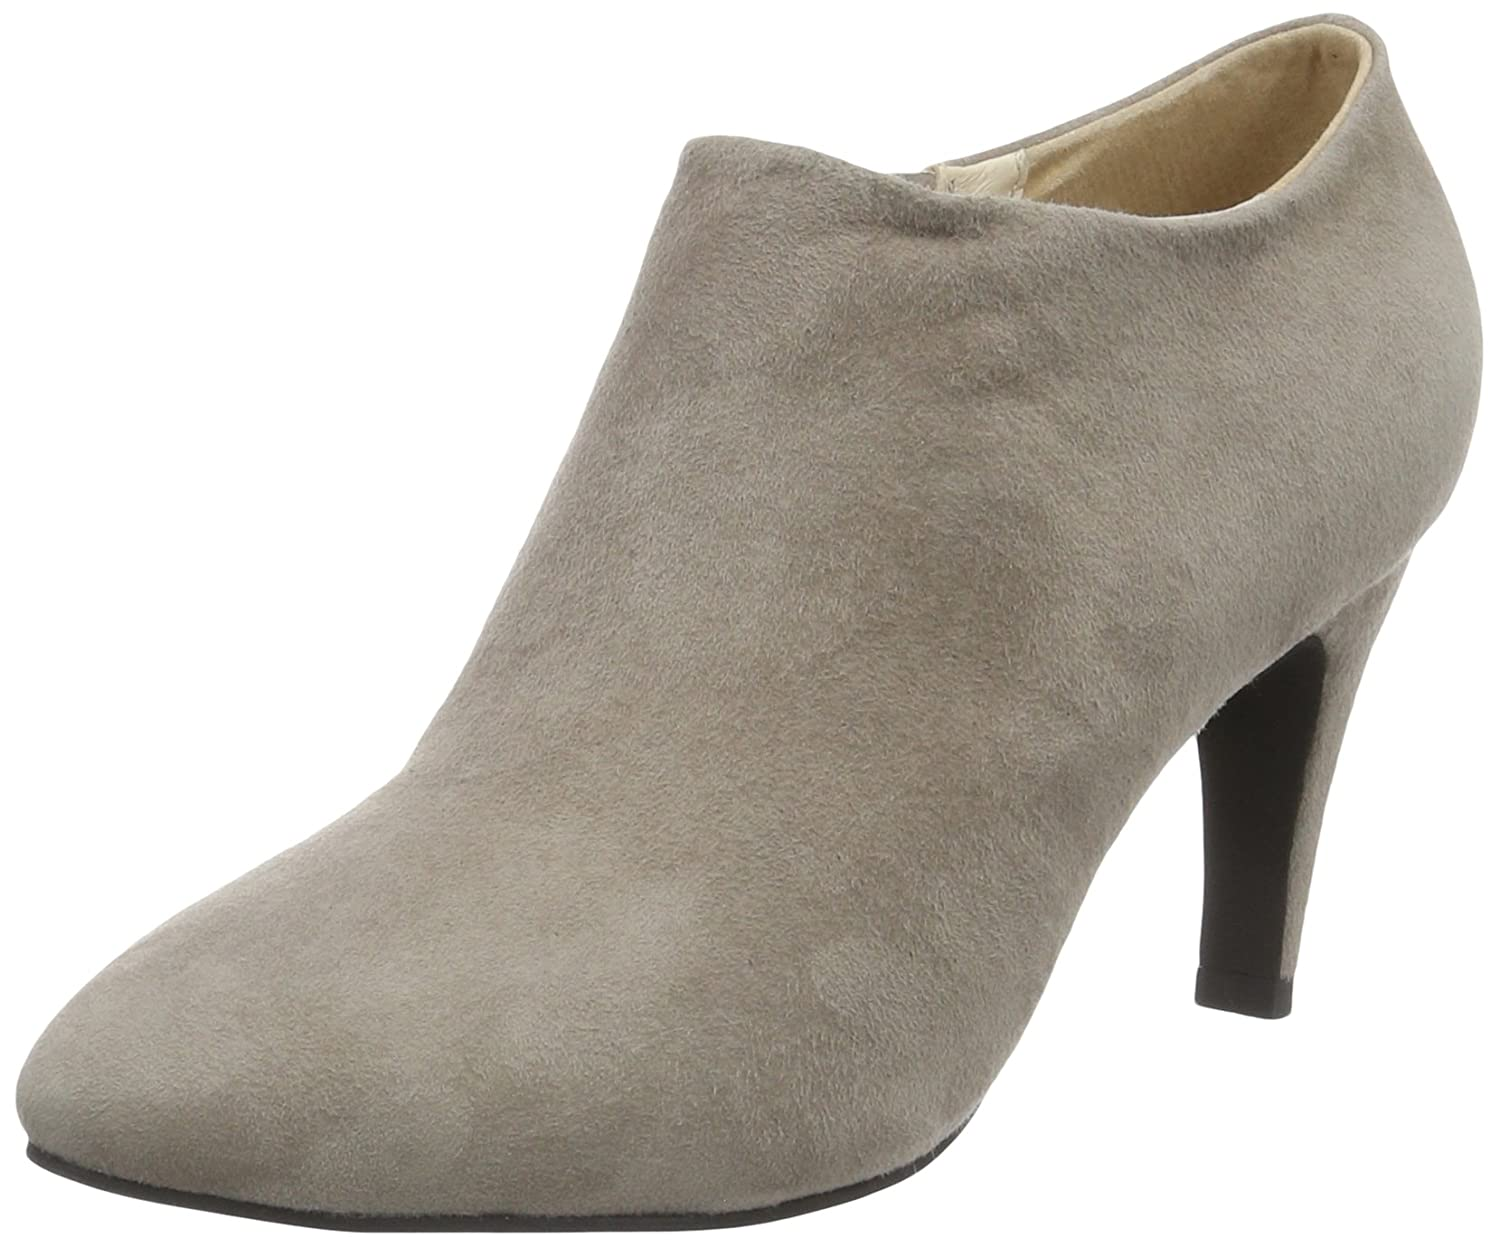 Schuhe The Pumps Bear Damen Carrie S Pumps The Braun (160 Taupe) a73d94